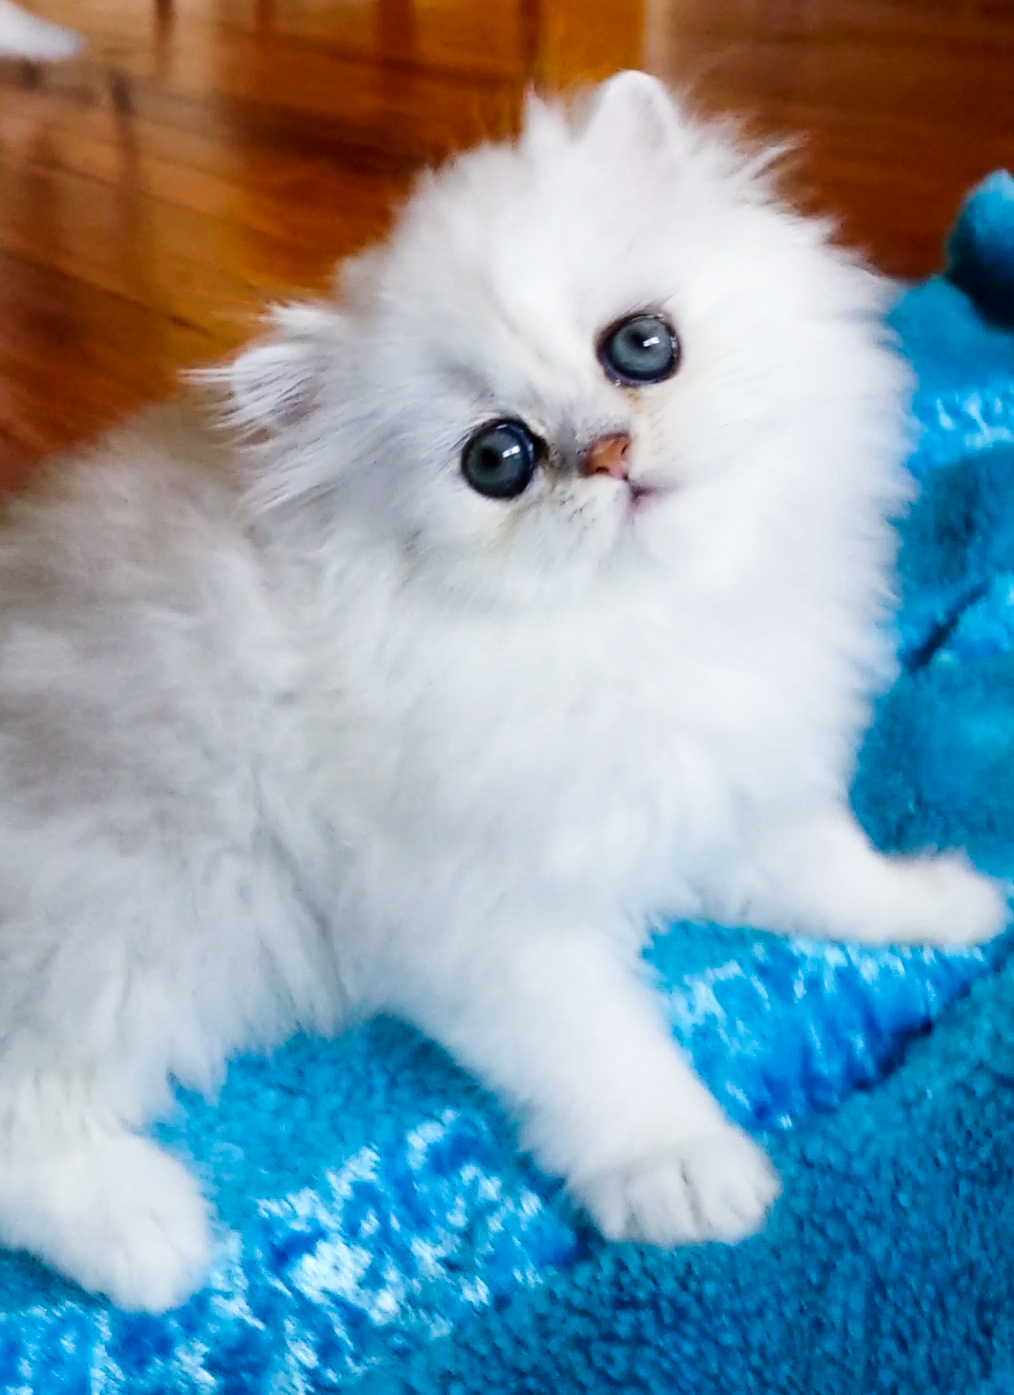 http://s5.picofile.com/file/8150635576/purepersiancat_12_.jpg